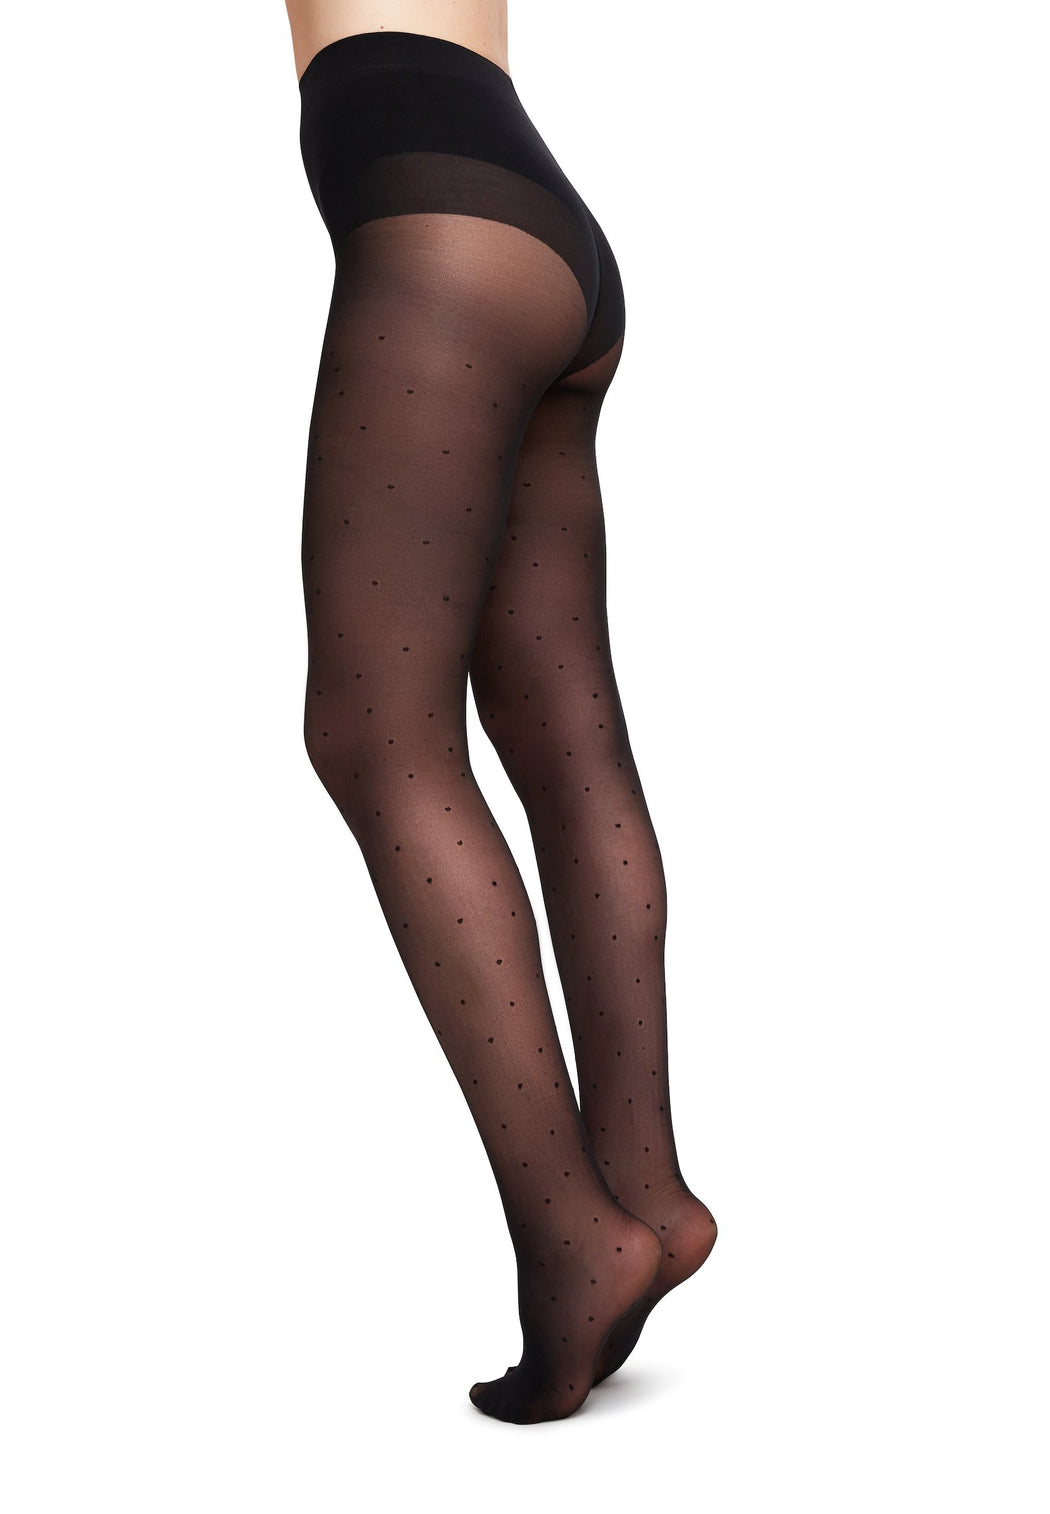 strumpfhose doris dots black